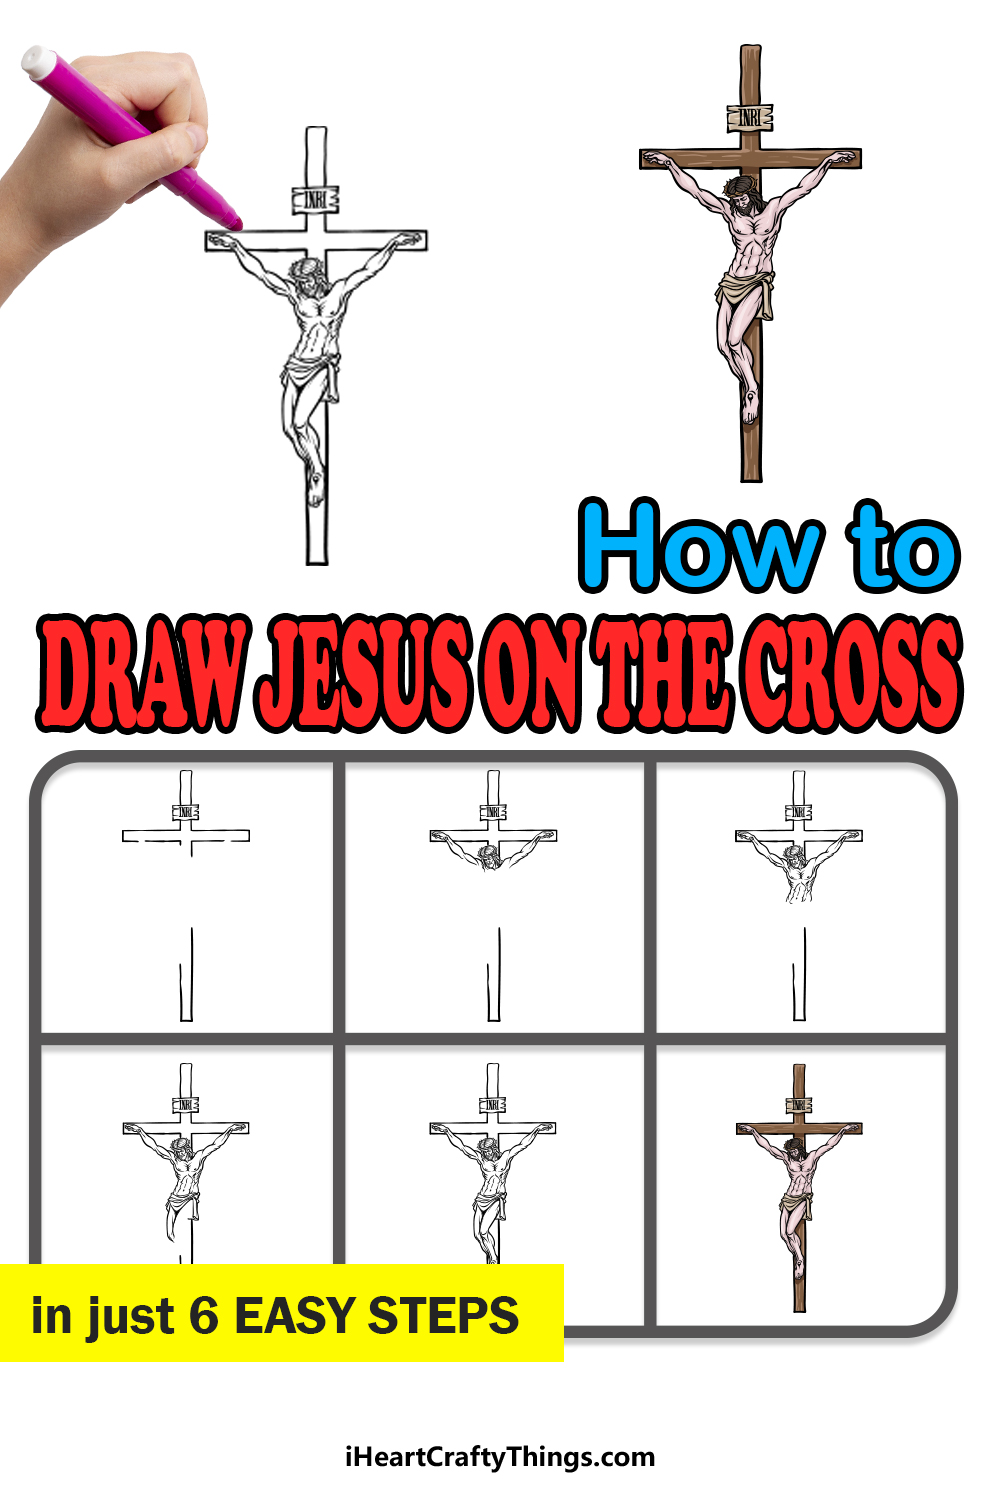 how to draw Jesus on the Cross in 6 easy steps